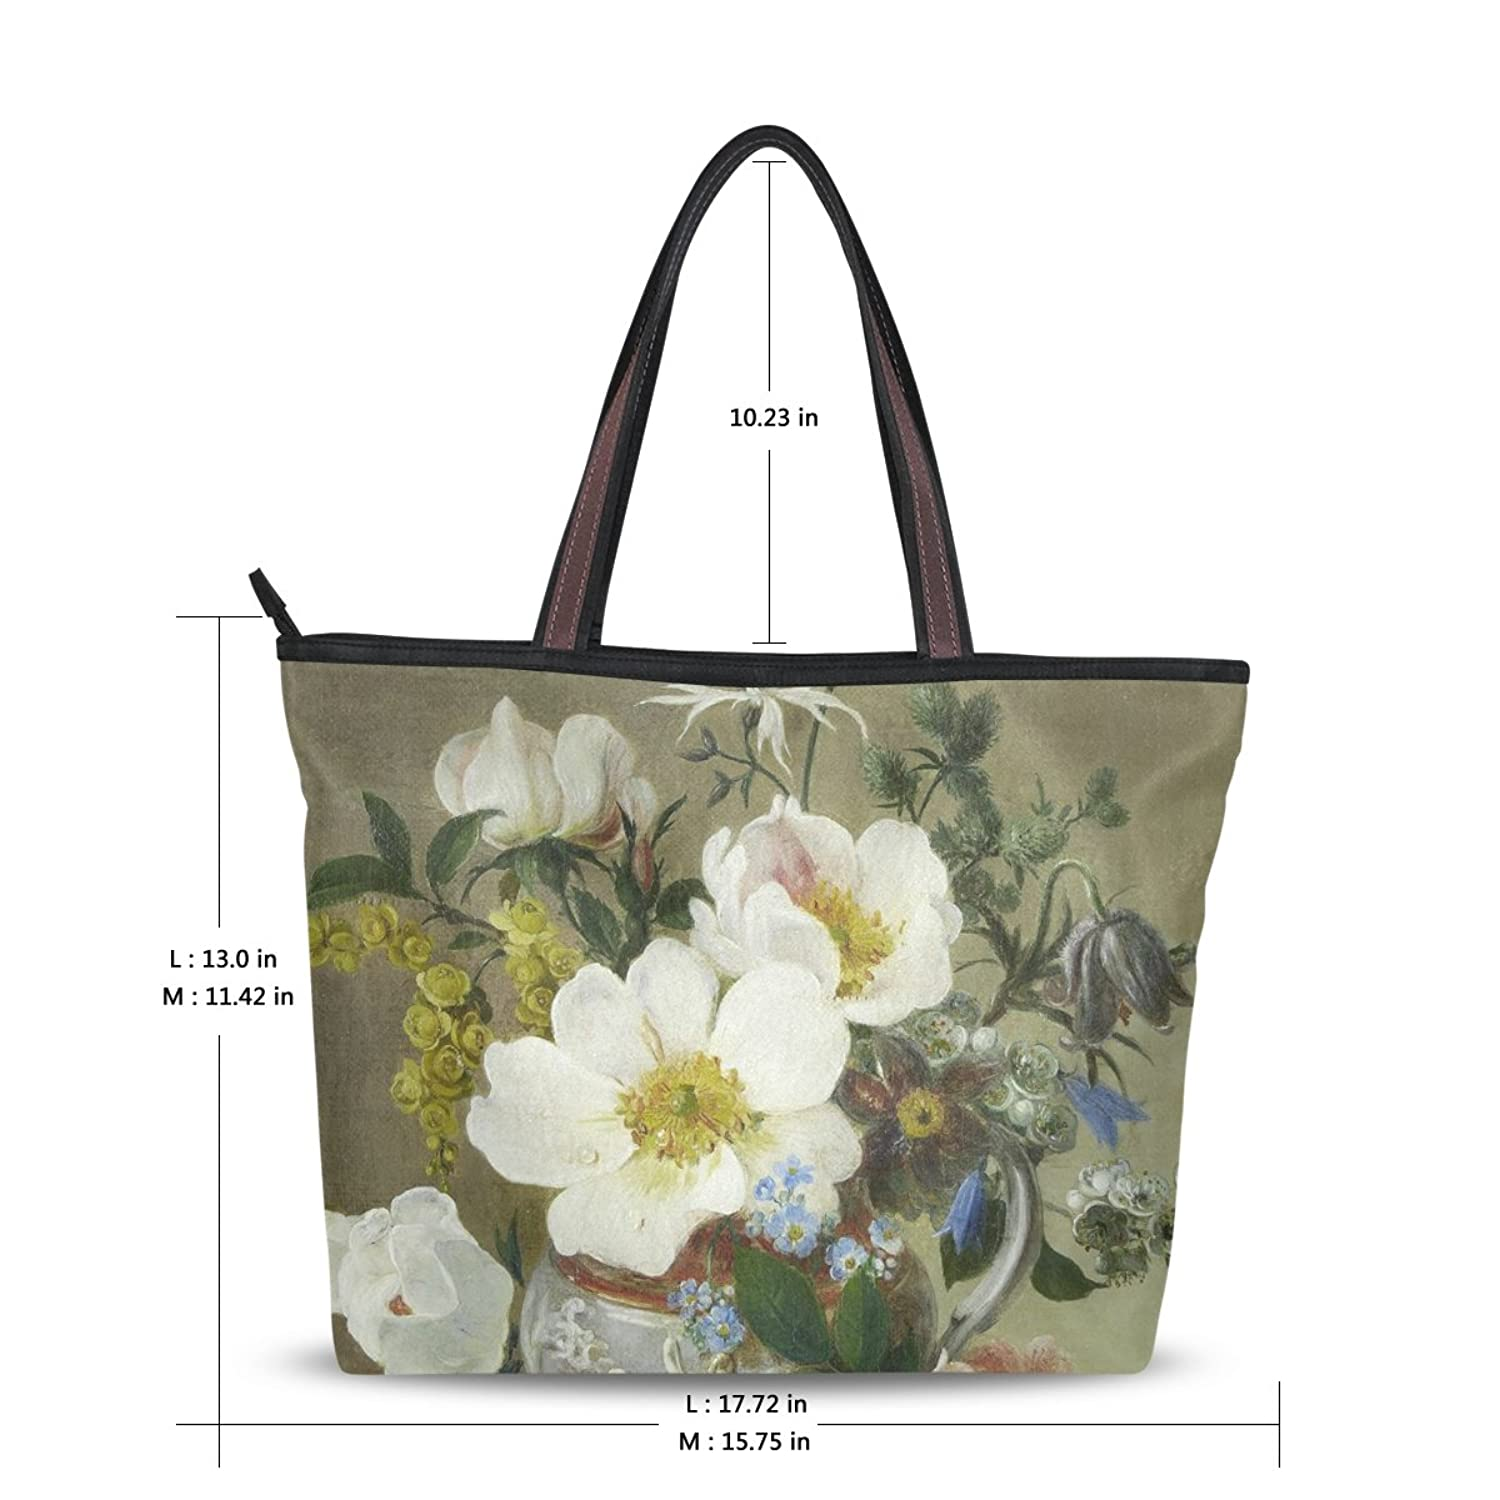 Yochoice Women's Shoulder Bags,Retro Vintage Art Floral Oil Painting,Tote Bag Design 194